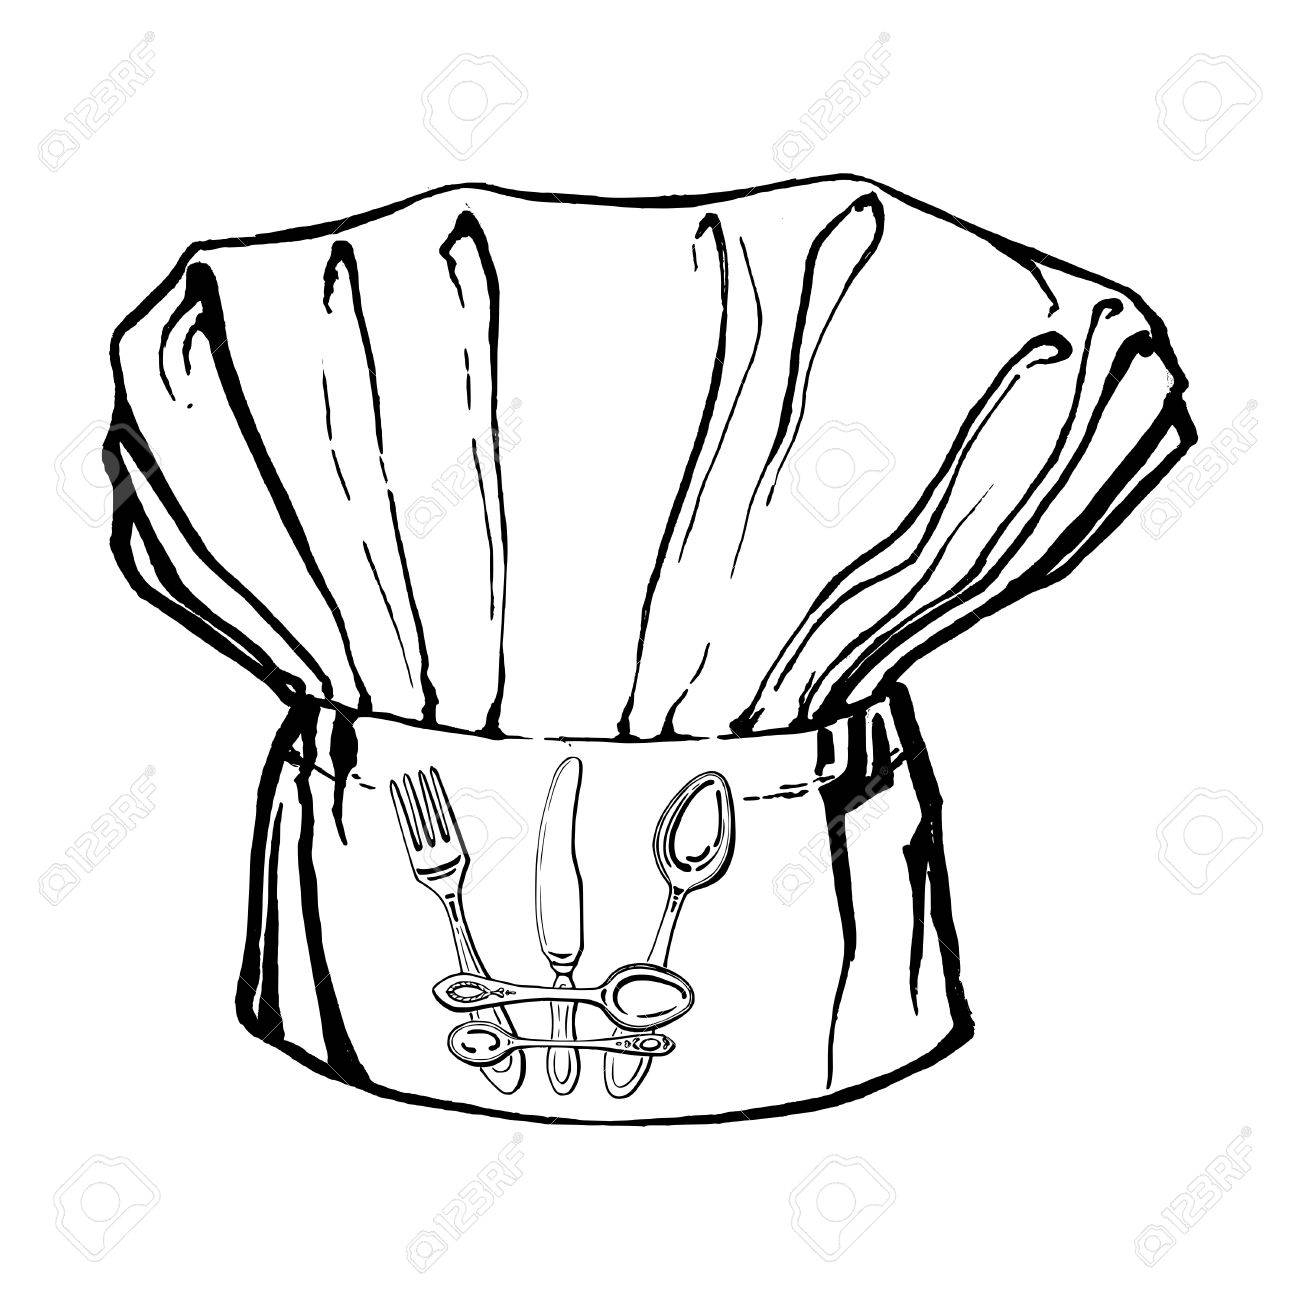 1300x1300 Drawing Of A Chef Hat